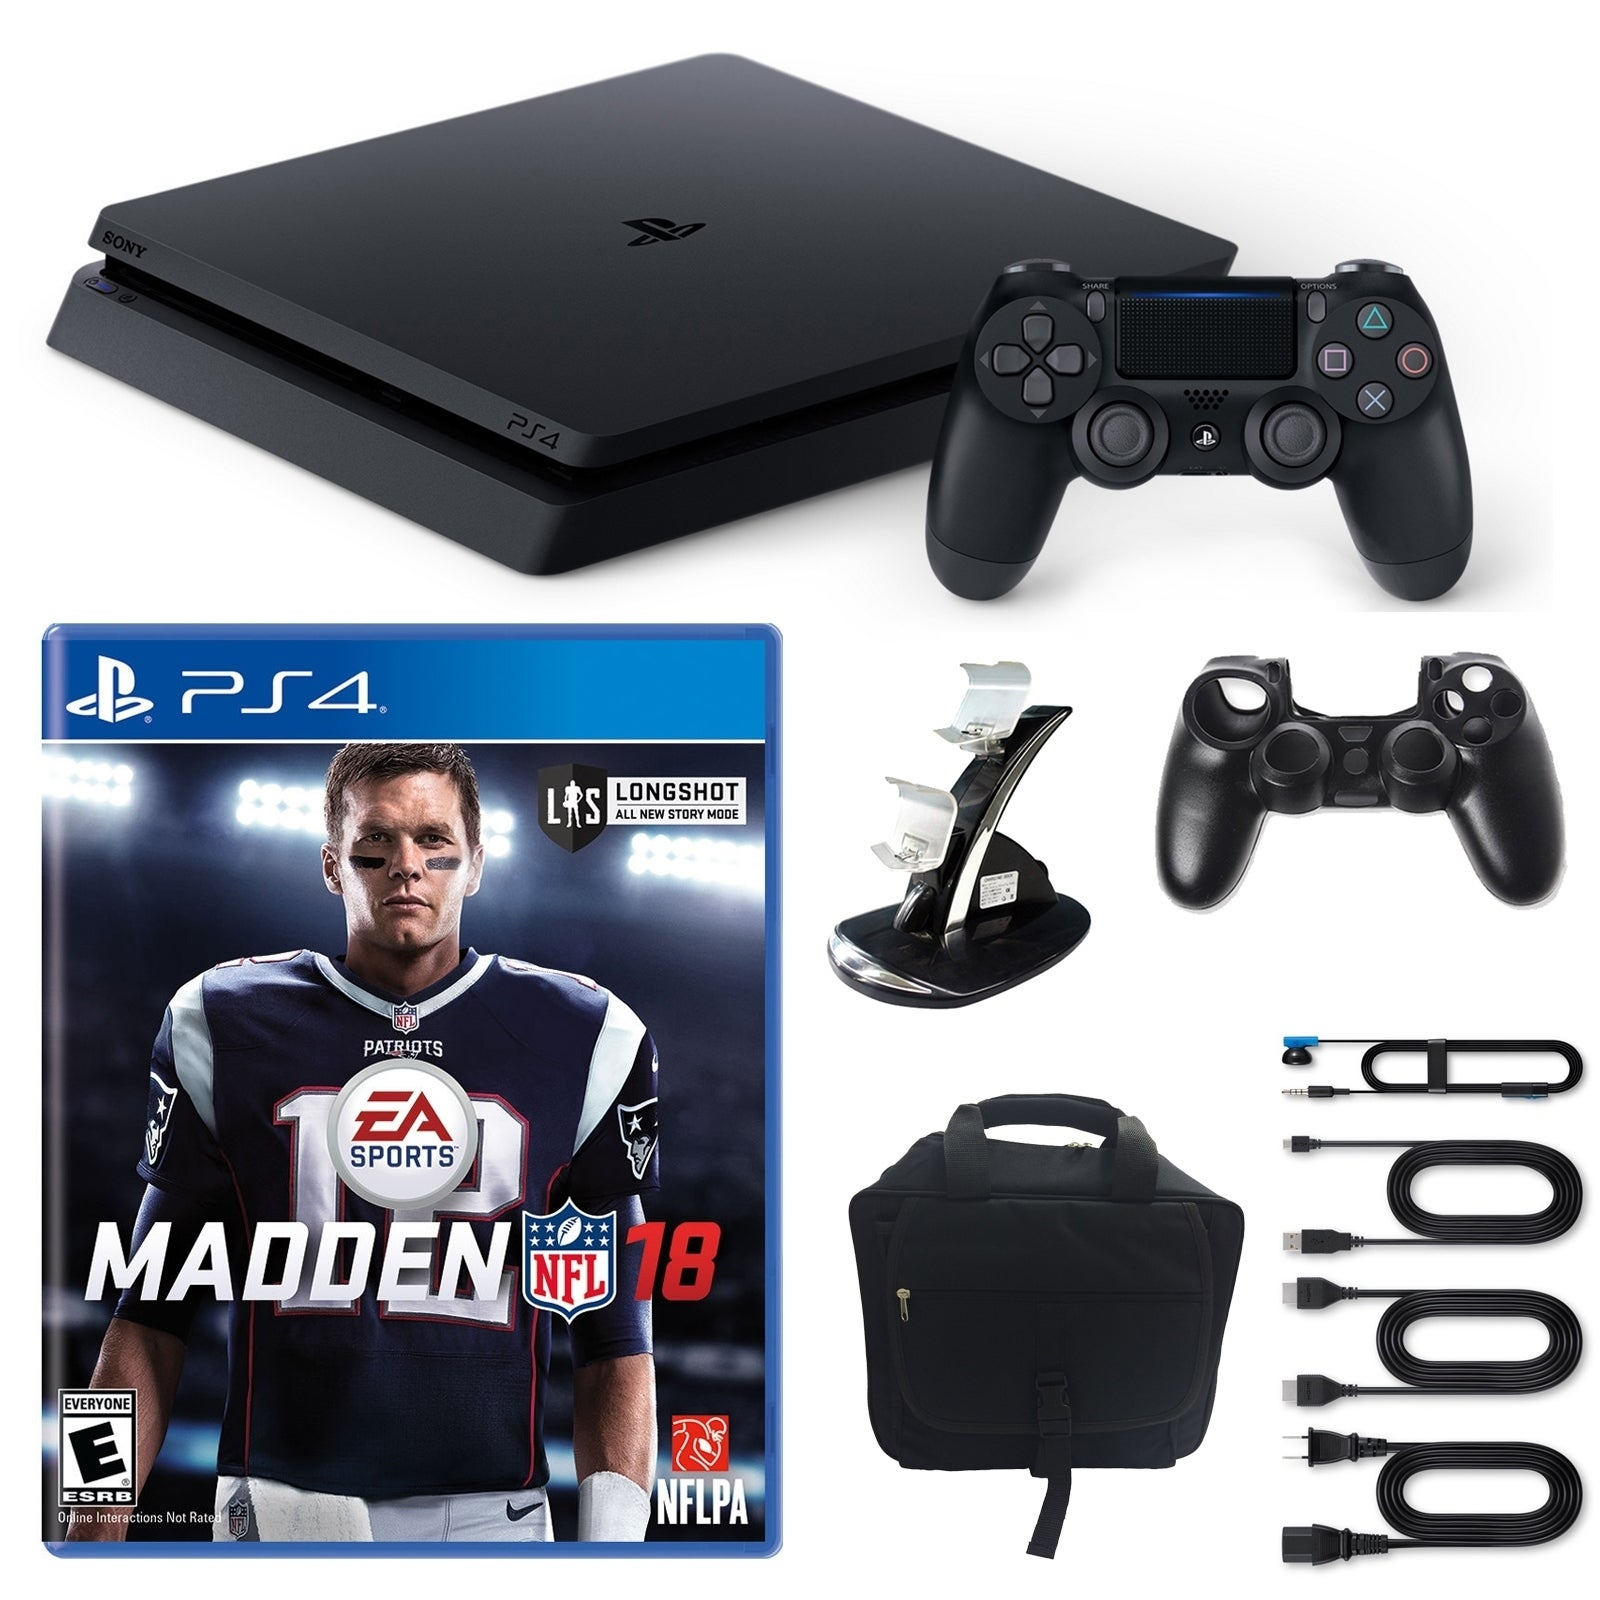 Playstation 4 1TB Core Console with Madden NFL 18, Consol...